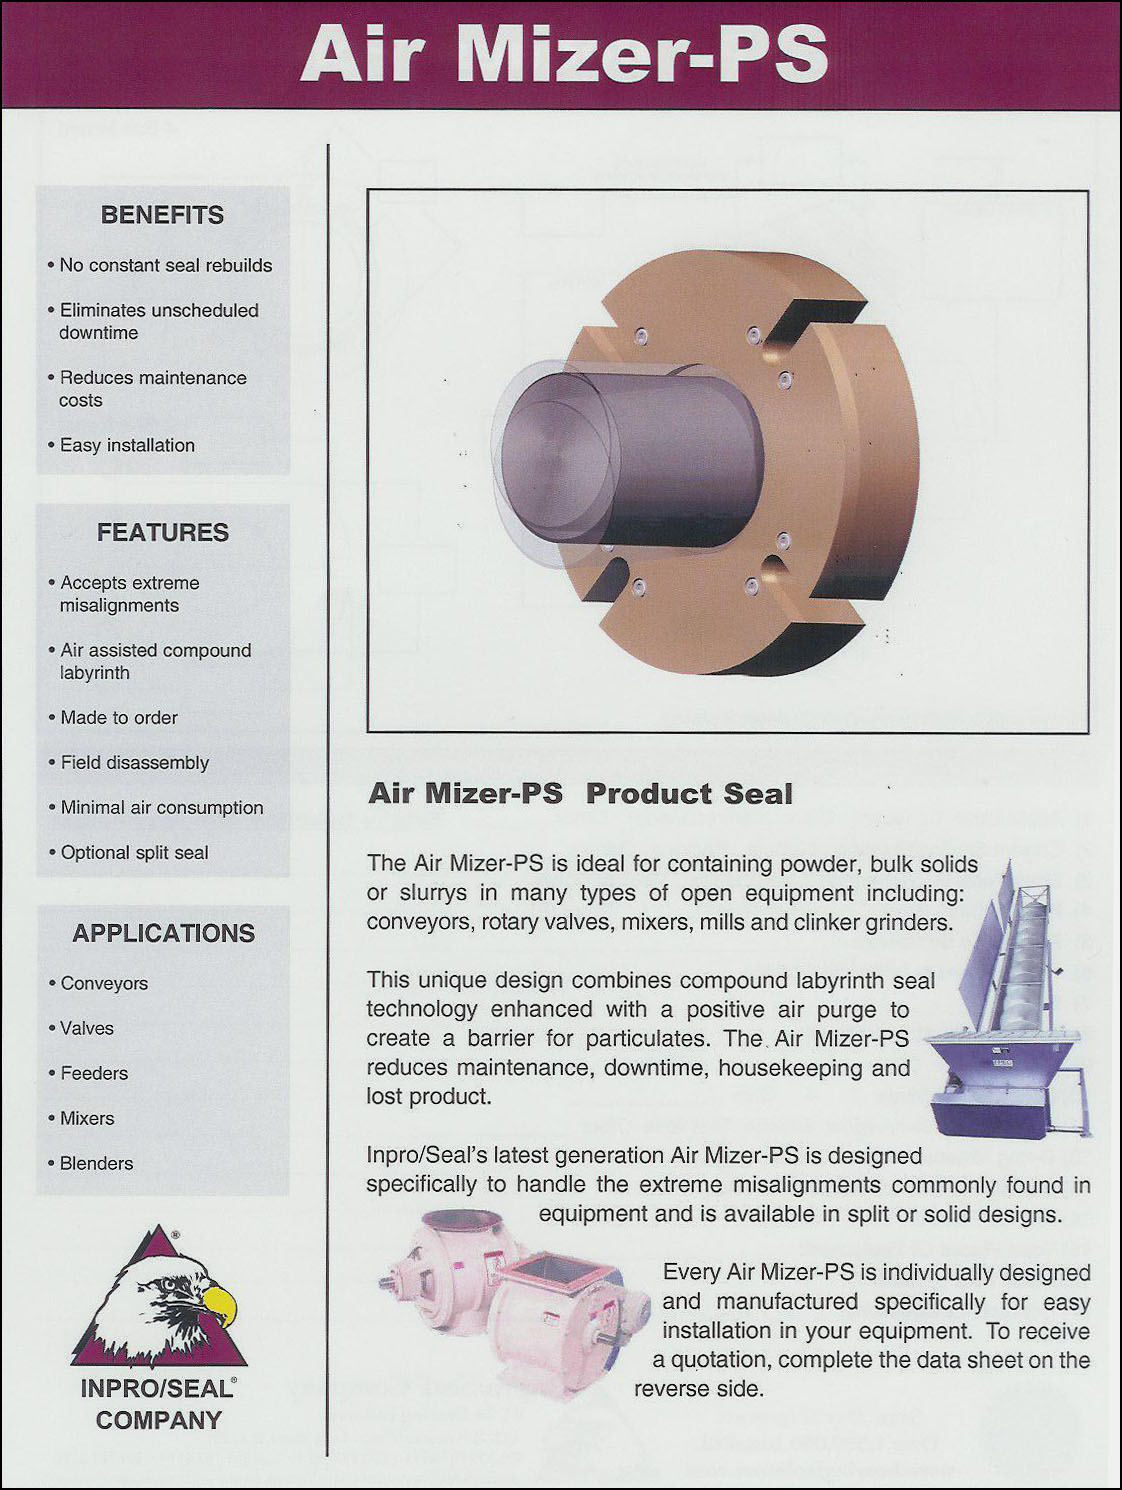 New Conveyor Idler Bearing Isolator From Inpro Seal Increases Productivity Reliability And